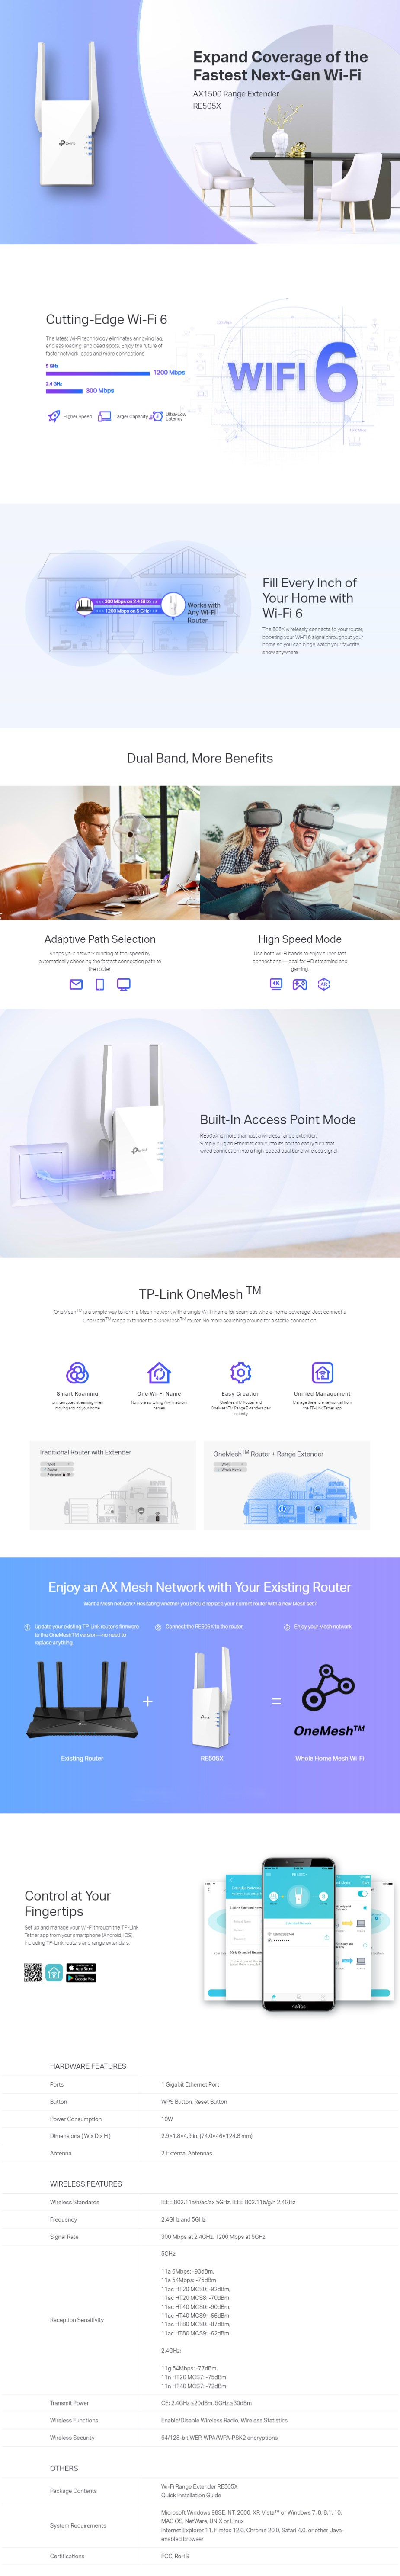 TP-Link RE505X AX1500 Wi-Fi Range Extender - Overview 1